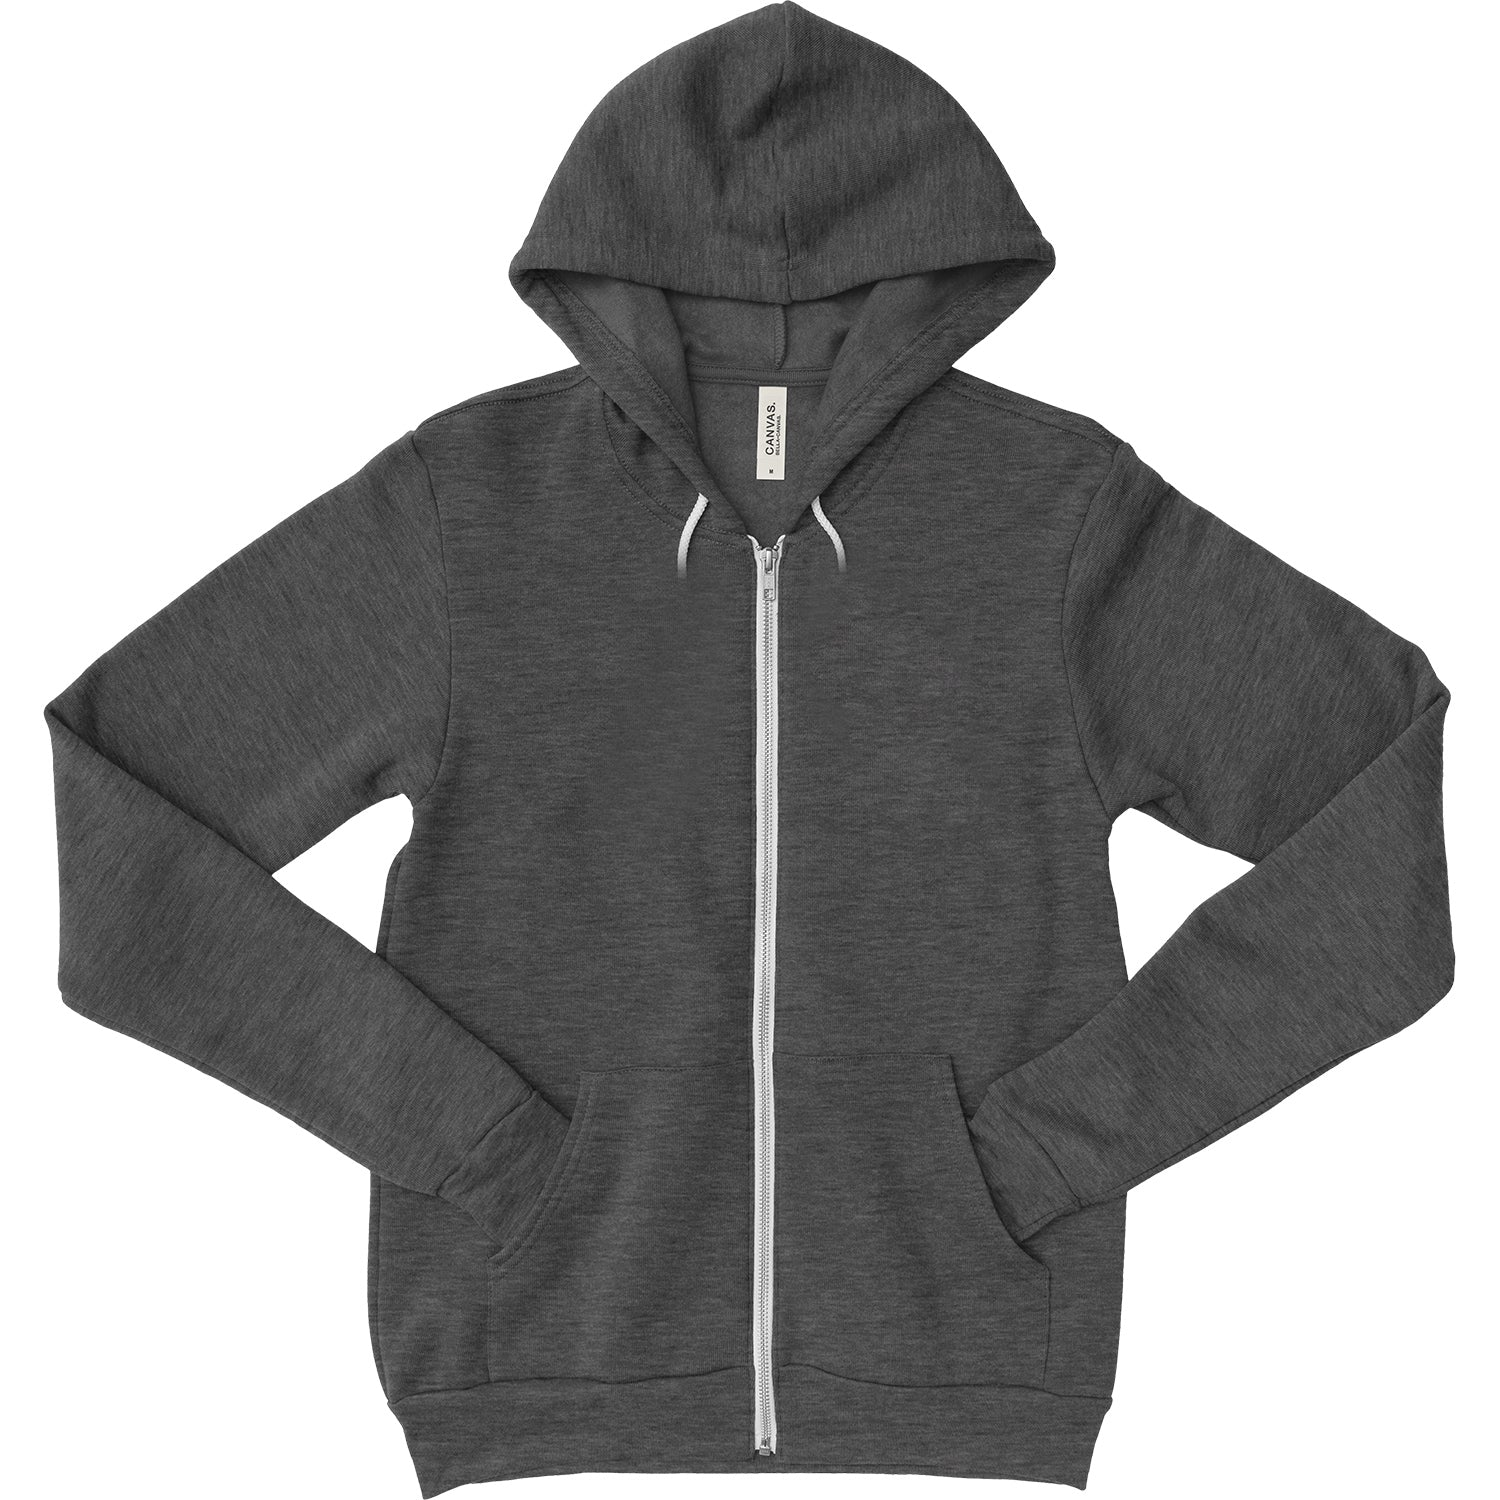 Unisex Zipper Dual Blend Fleece Hoodie - Dark Grey Heather